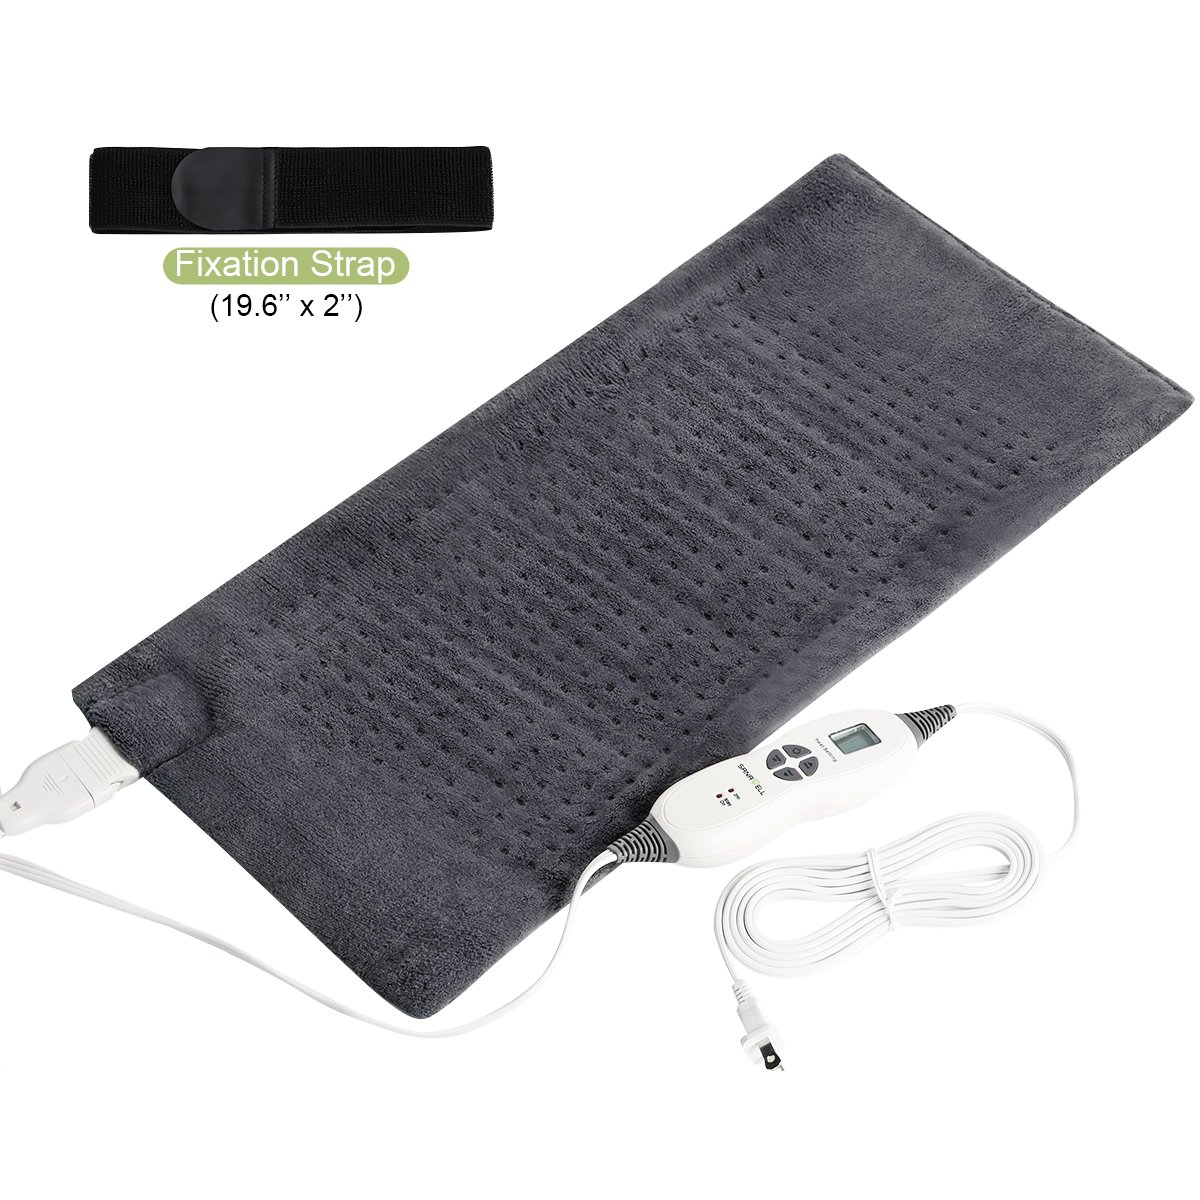 SanaWell Extra Large Electric Heating Pad with Auto Shut Off Moist Heat Therapy For Neck Shoulder and Back Pain Relief Included Fixation Strap King Size 12'' x 24'' - Charcoal Gray by SanaWell